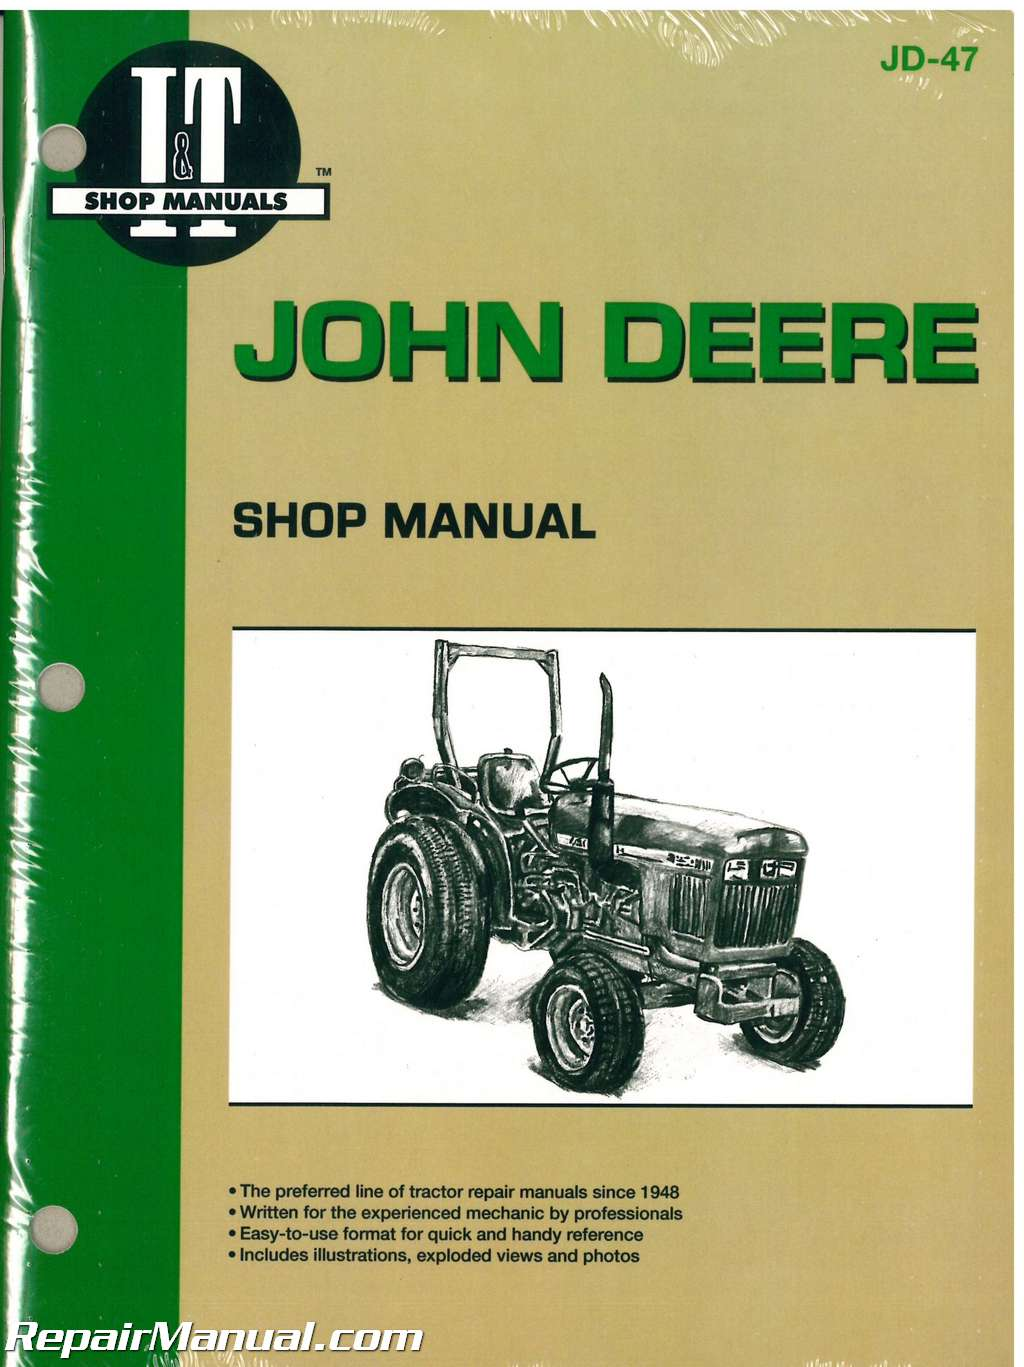 For John Deere 1050 Tractor Wiring Diagram John Deere 850 950 1050 Farm Tractor Workshop Manual